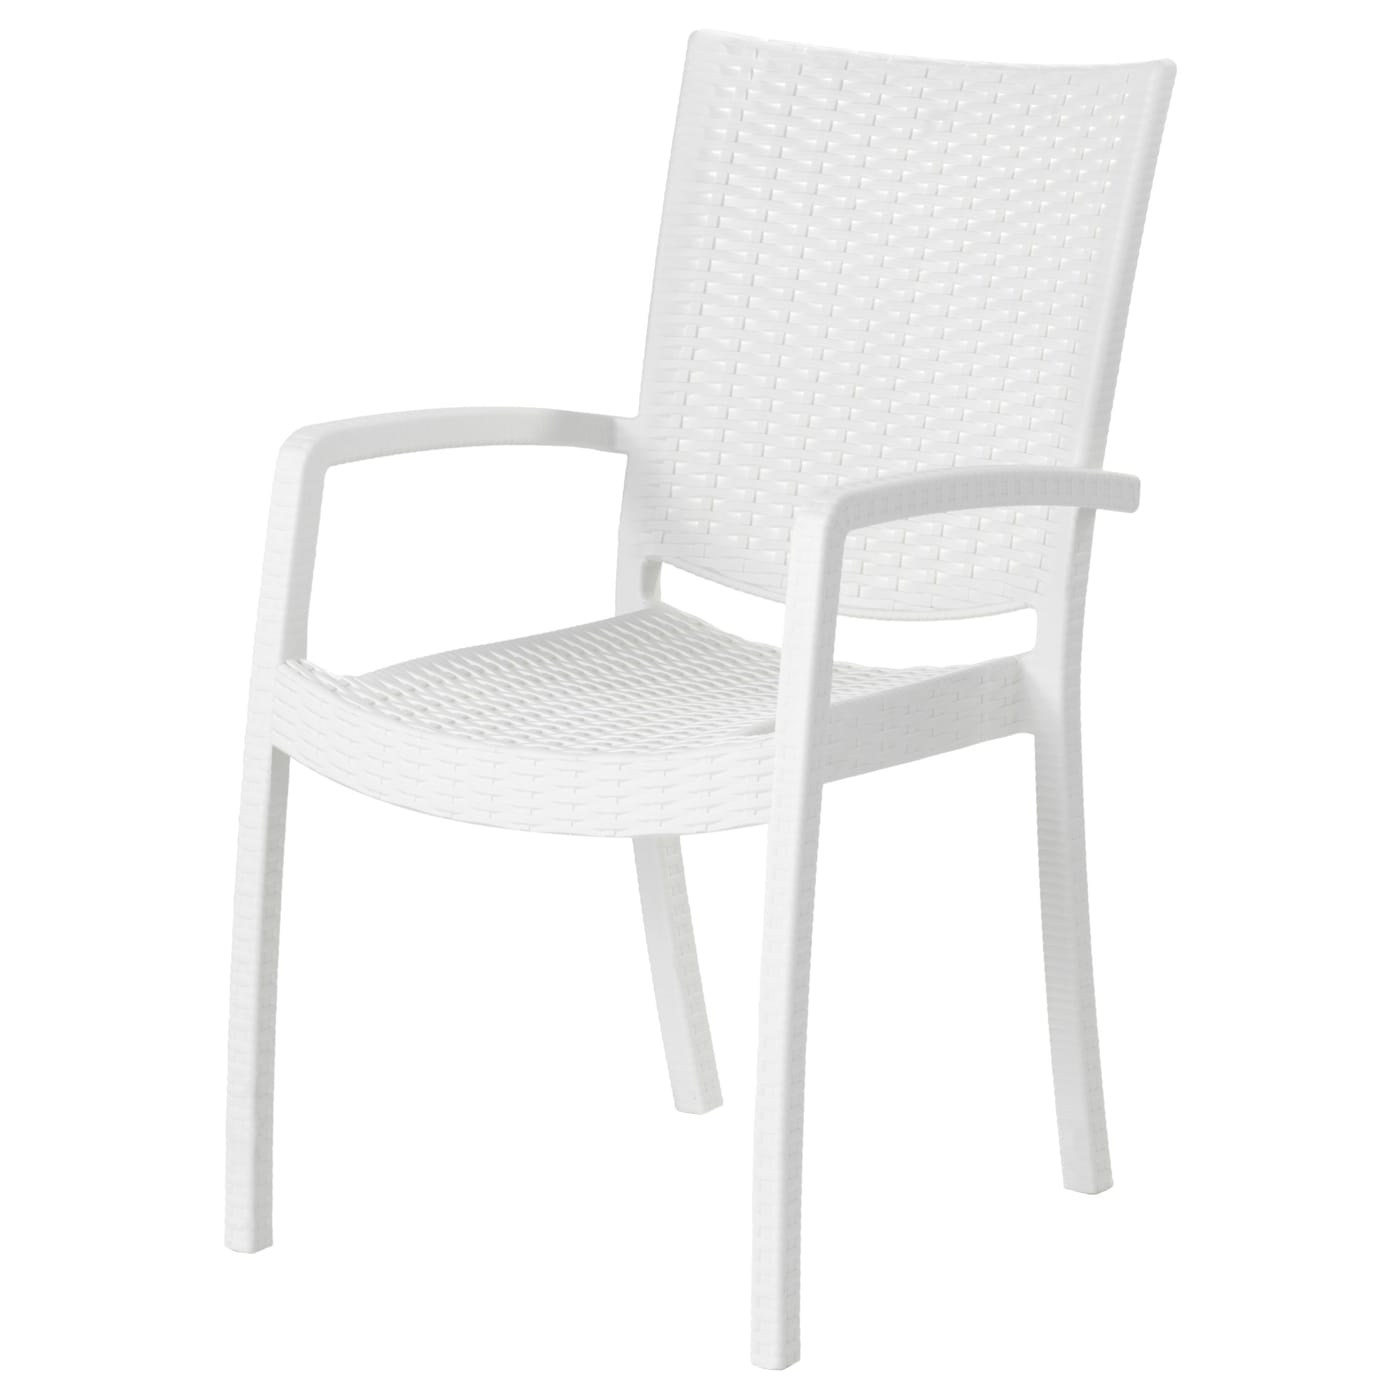 innamo chair with armrests outdoor white ikea. Black Bedroom Furniture Sets. Home Design Ideas